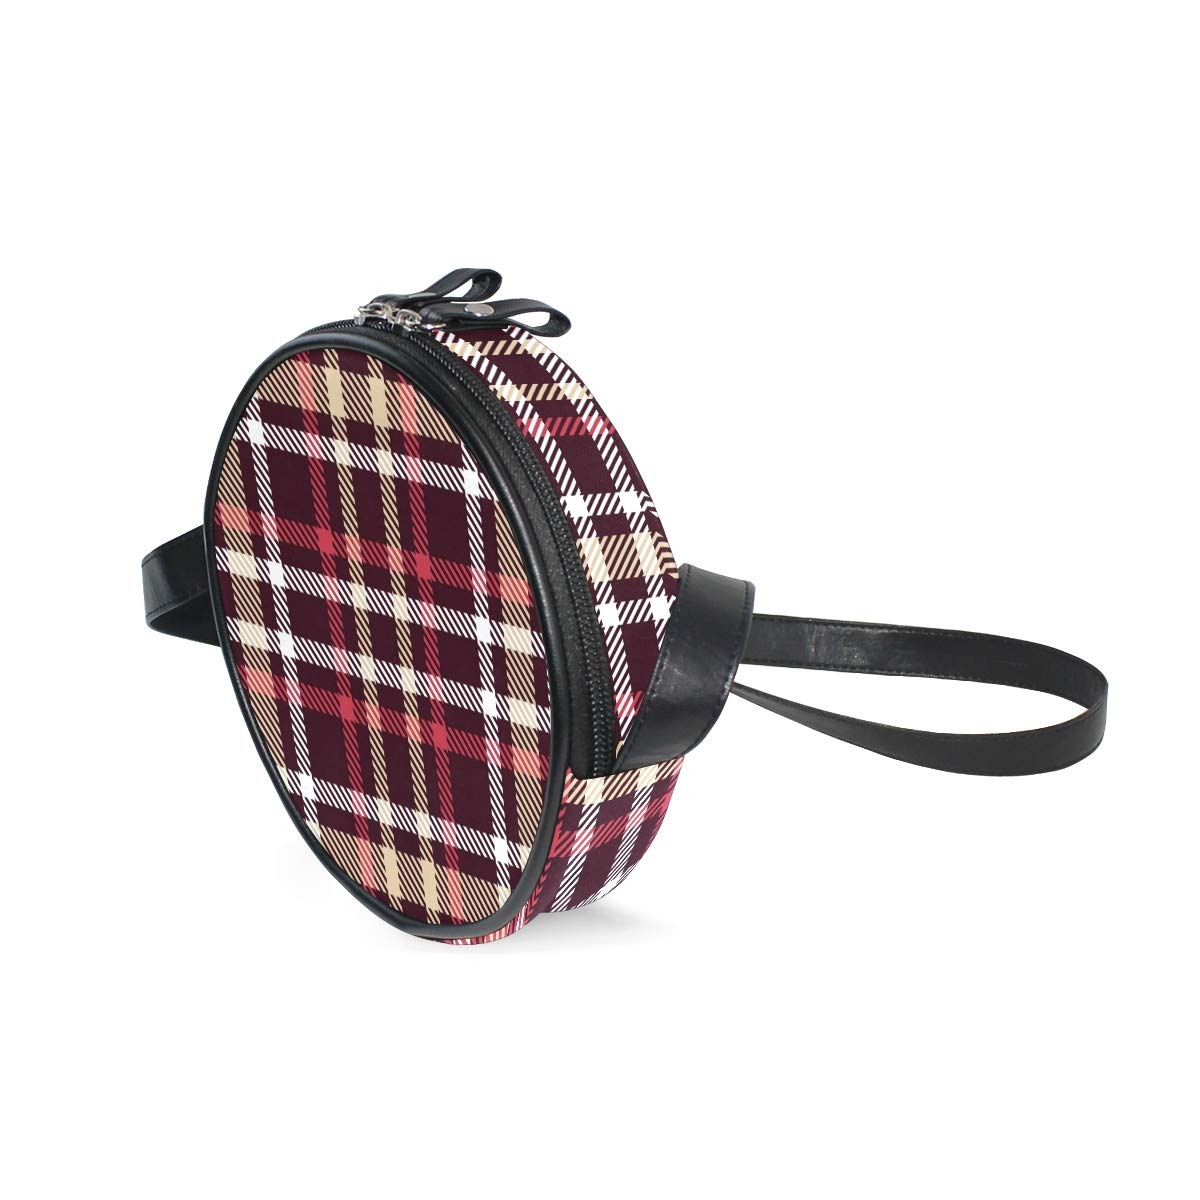 Red And Brown Tartan Seamless Vector Pattern Super Cute Design Small Canvas Messenger Bags Shoulder Bag Round Crossbody Bags Purses for Little Girls Gifts